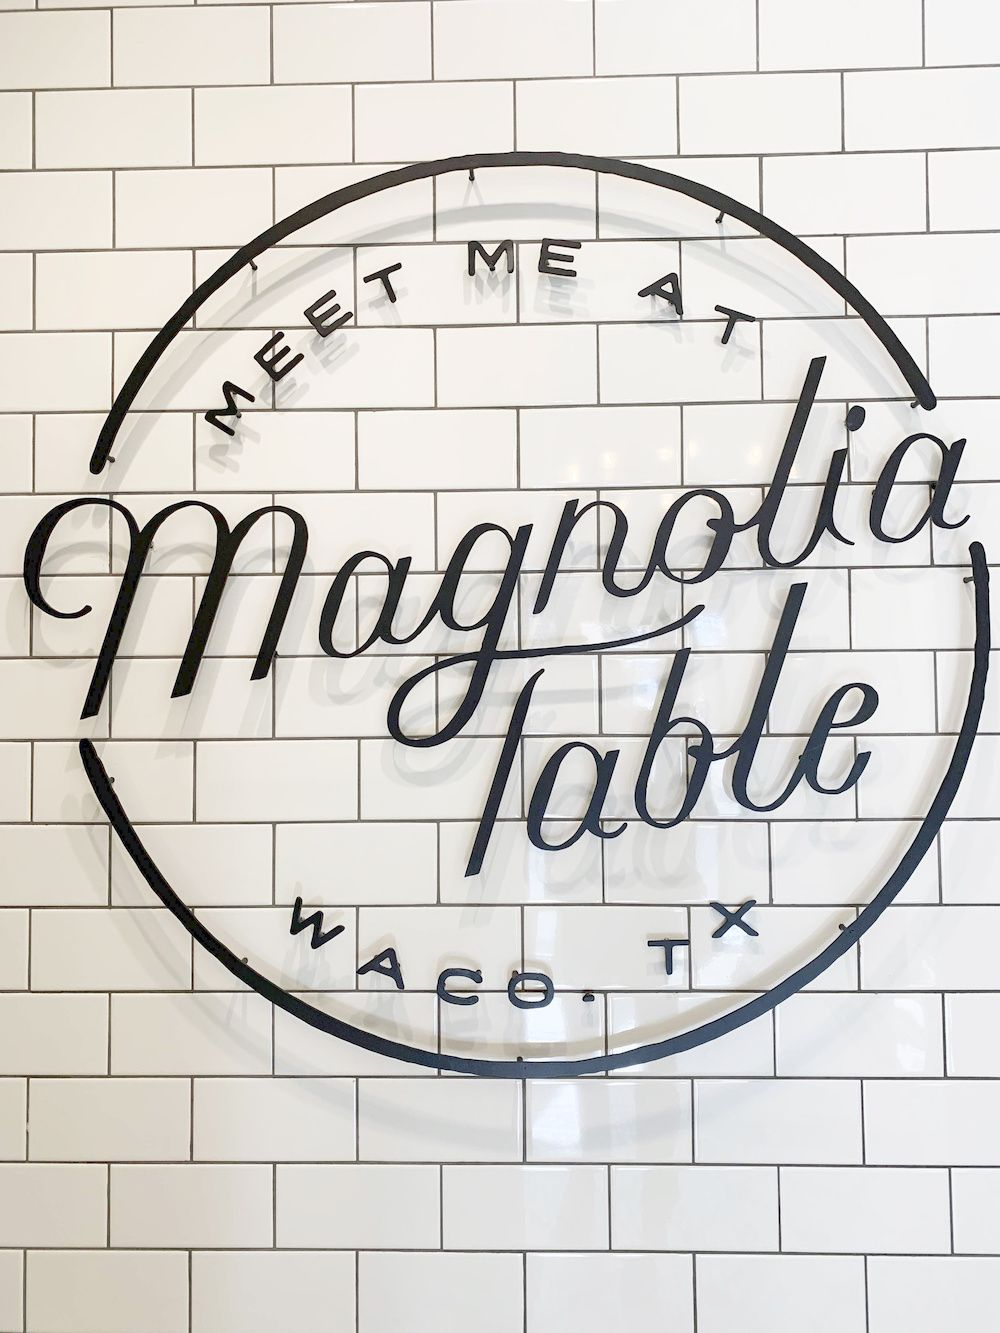 Meet me at Magnolia Table!